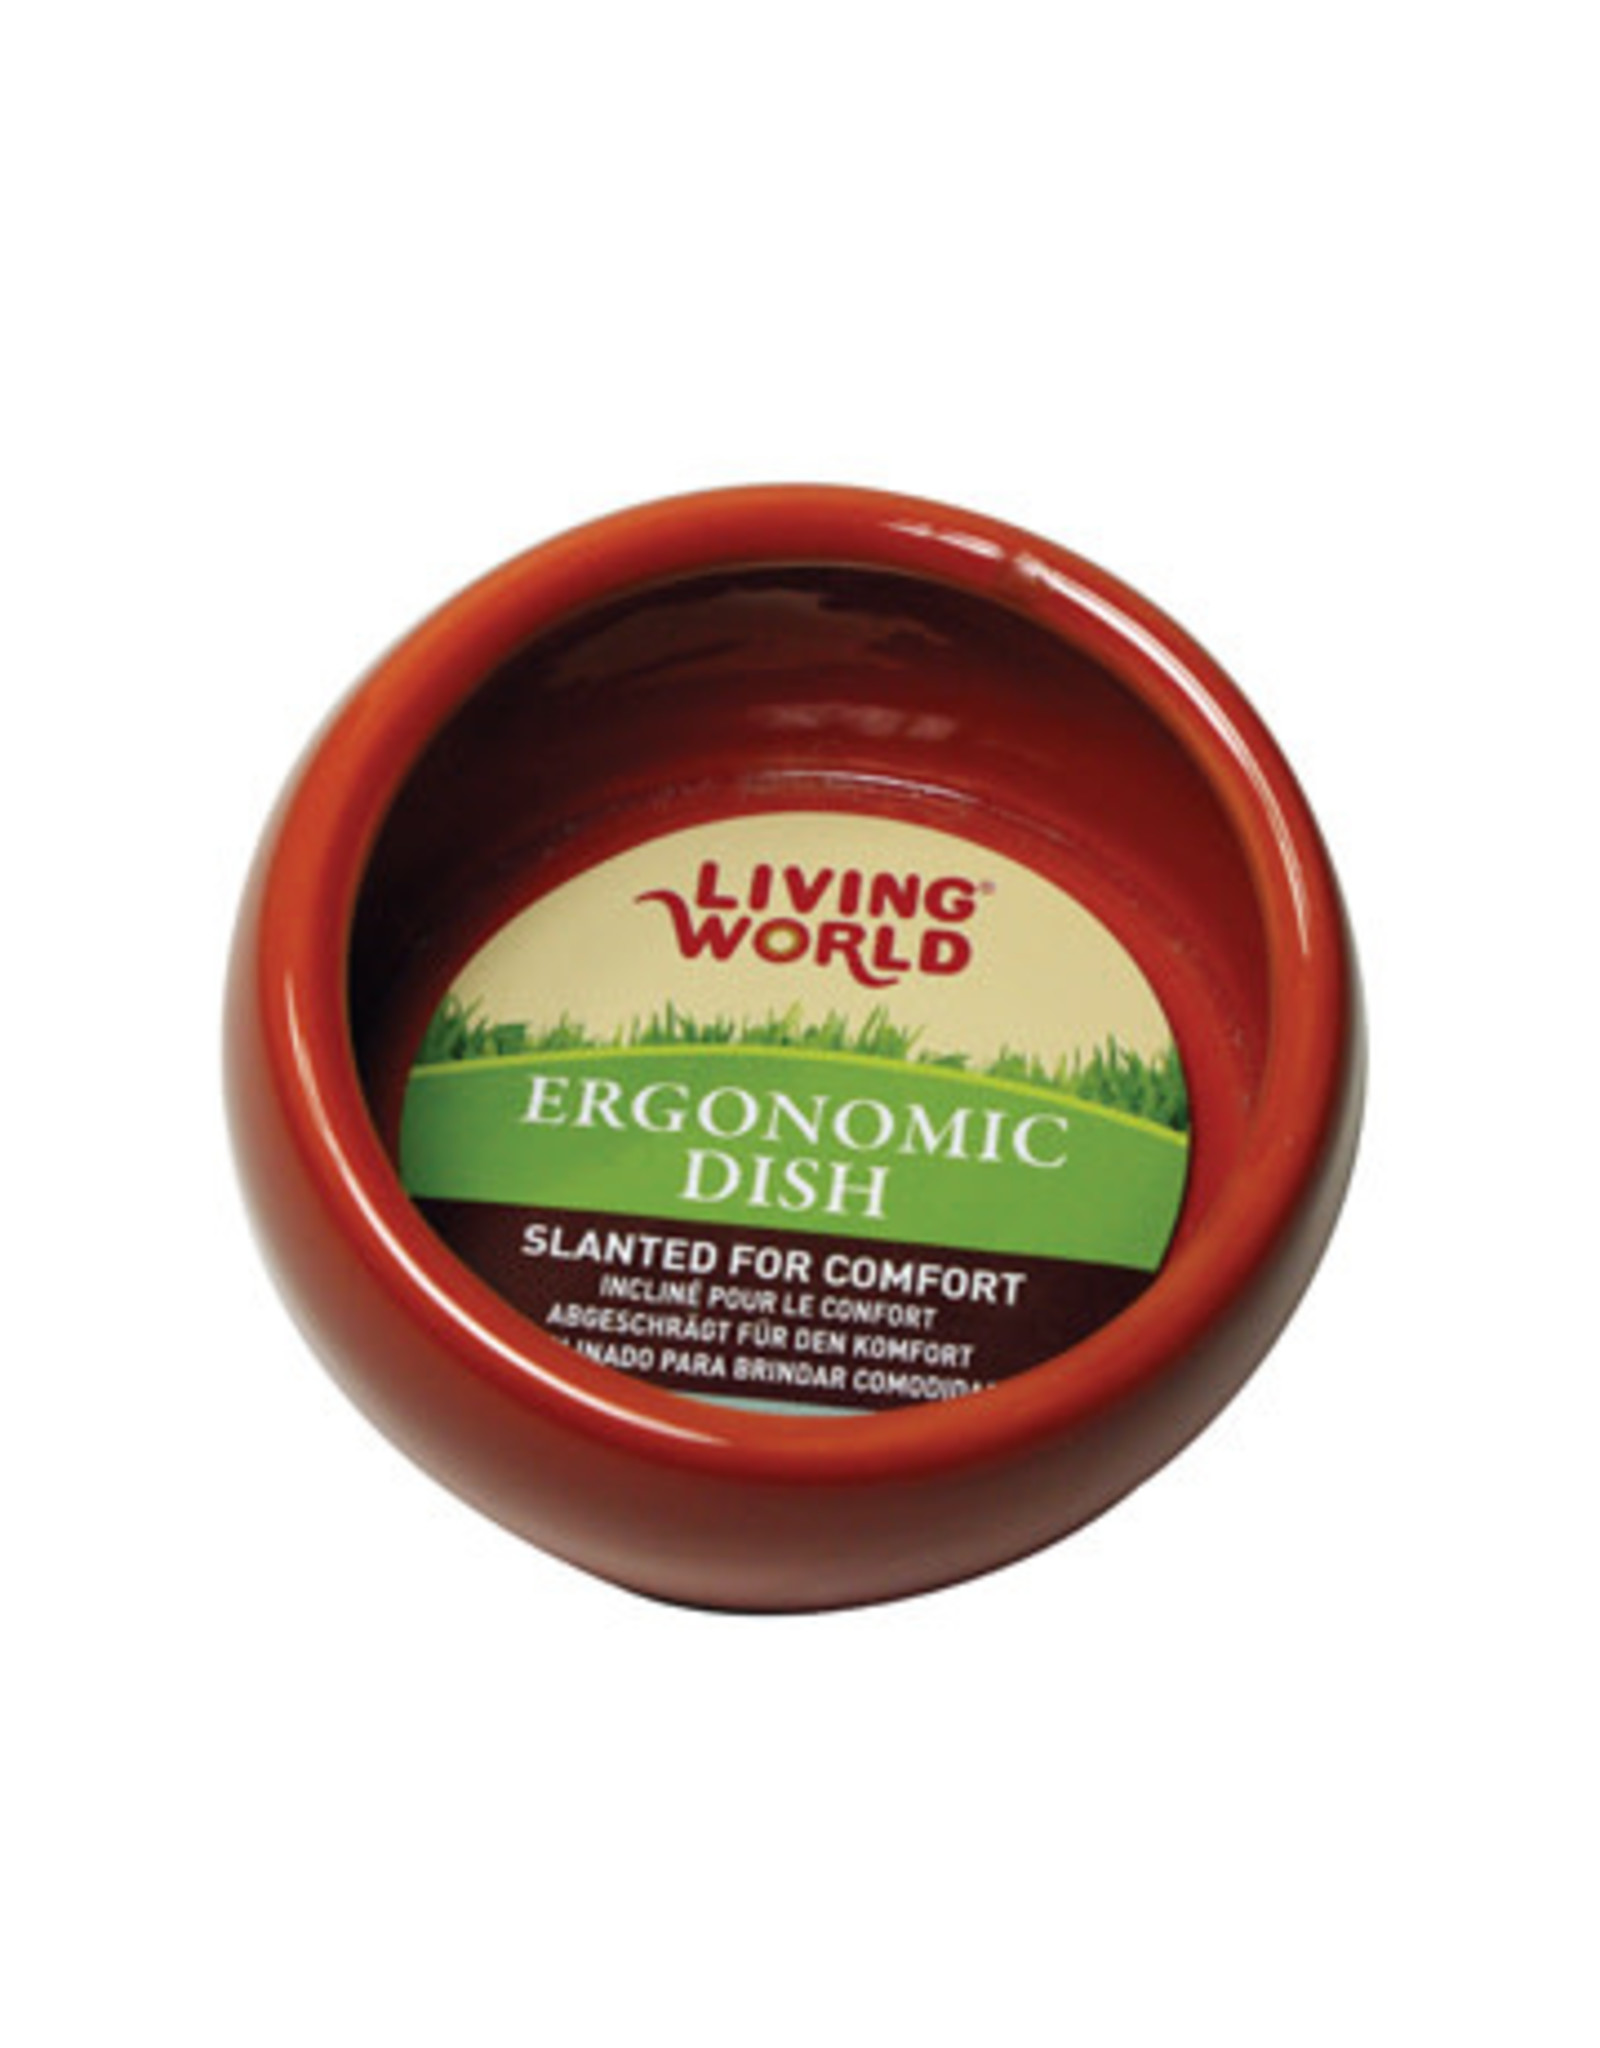 Living World Ergonomic Dish - Large - 420 mL (14.78 oz) - Terra Cotta/Ceramic